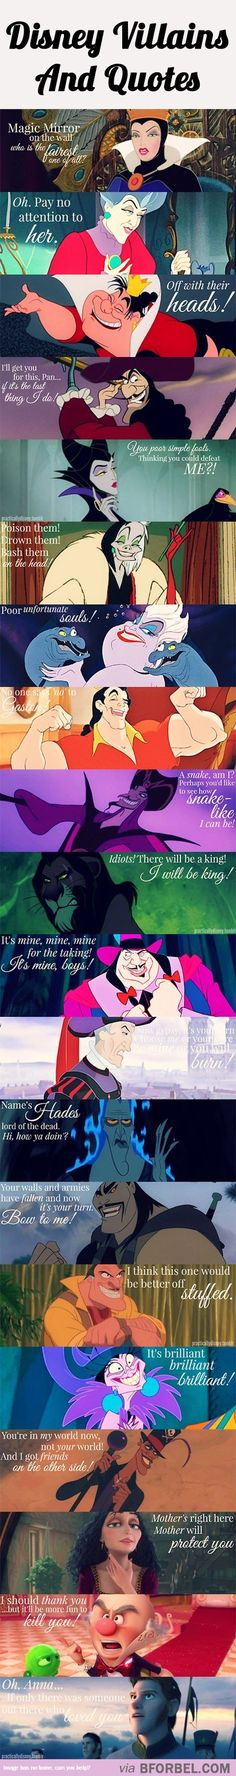 20 Disney Villains And Their Infamous Quotes… love them all!